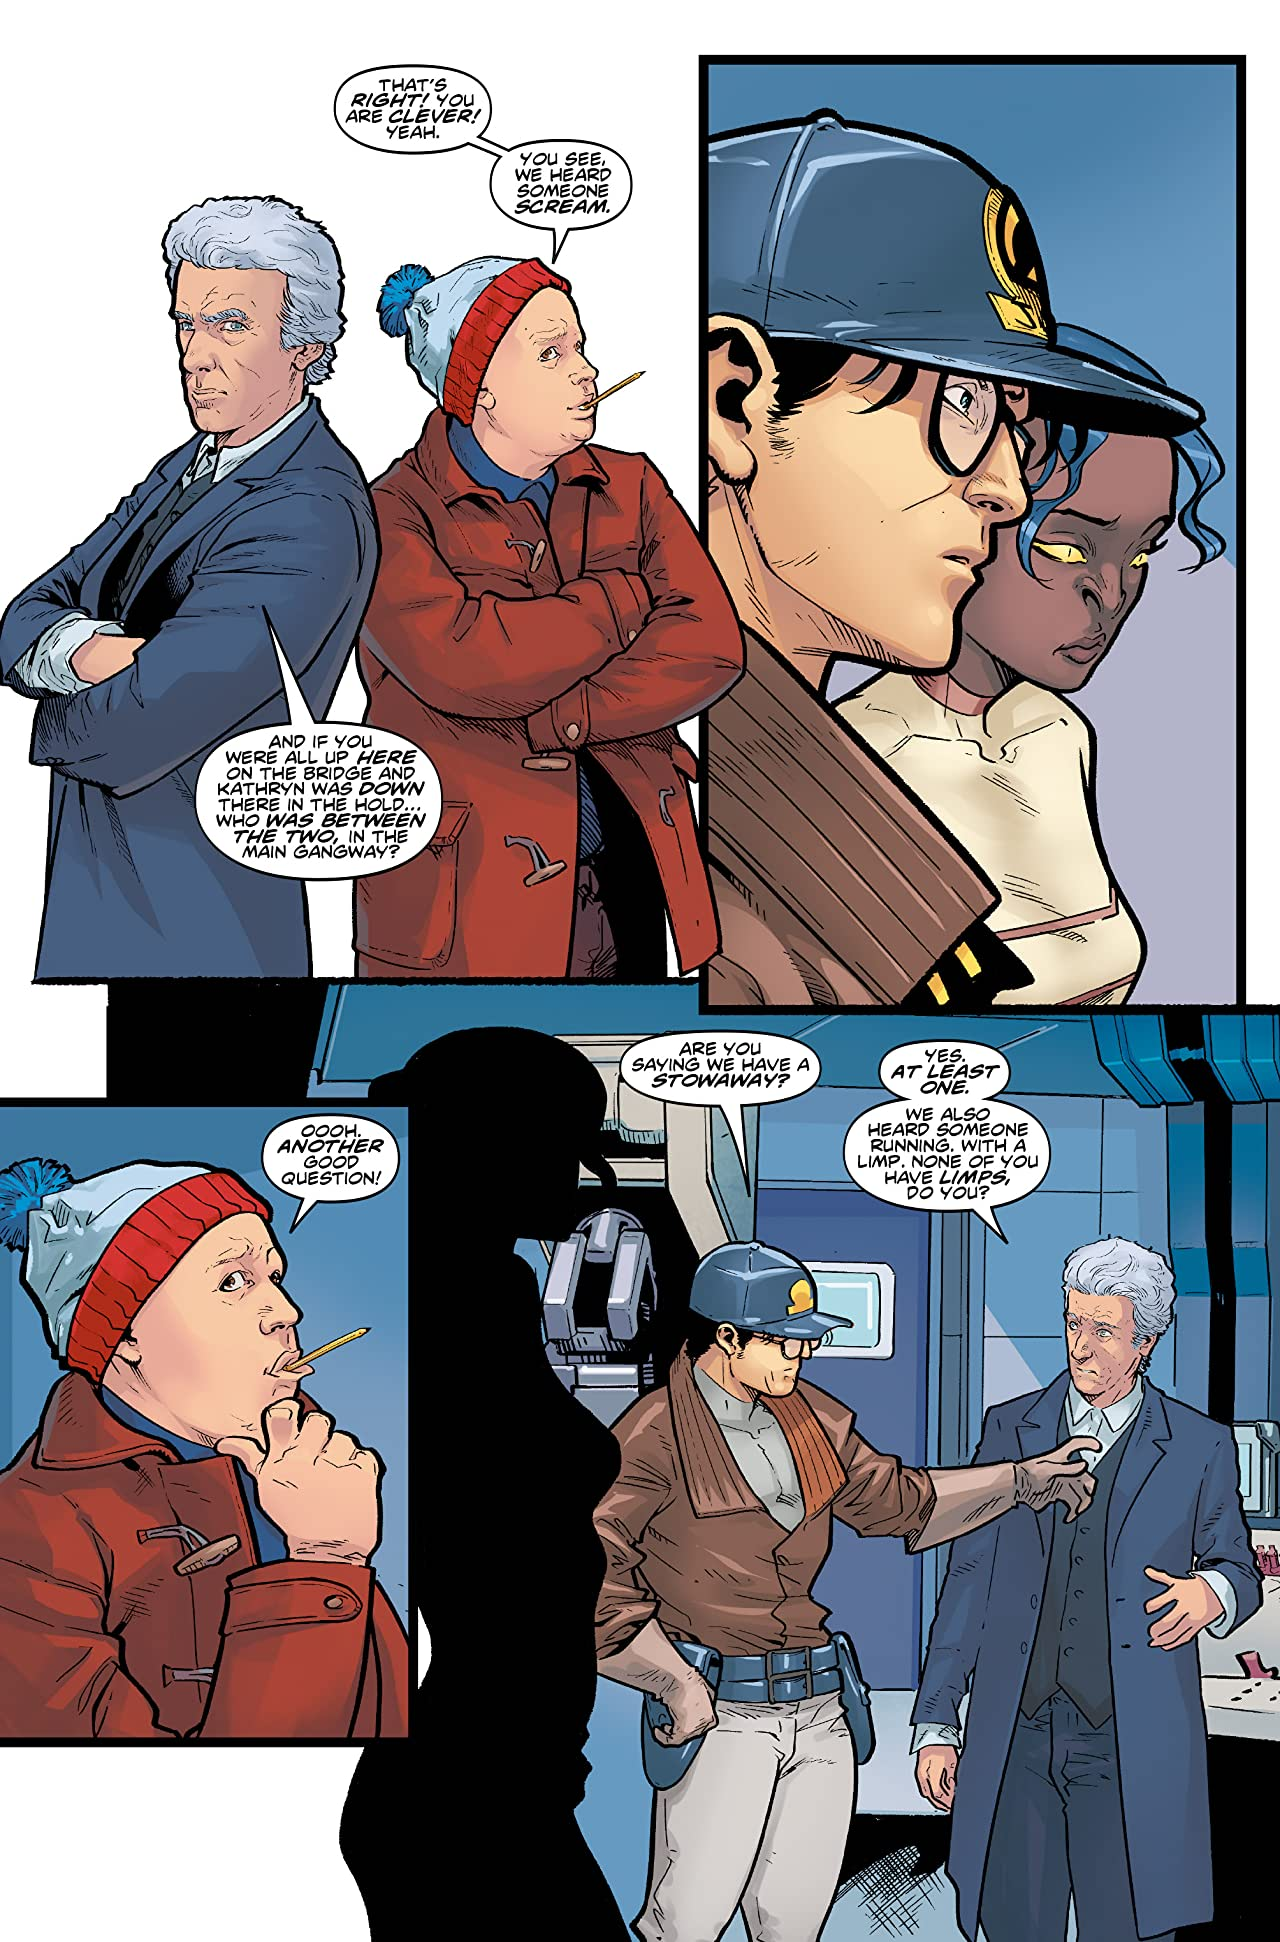 Doctor Who: The Twelfth Doctor #3.11